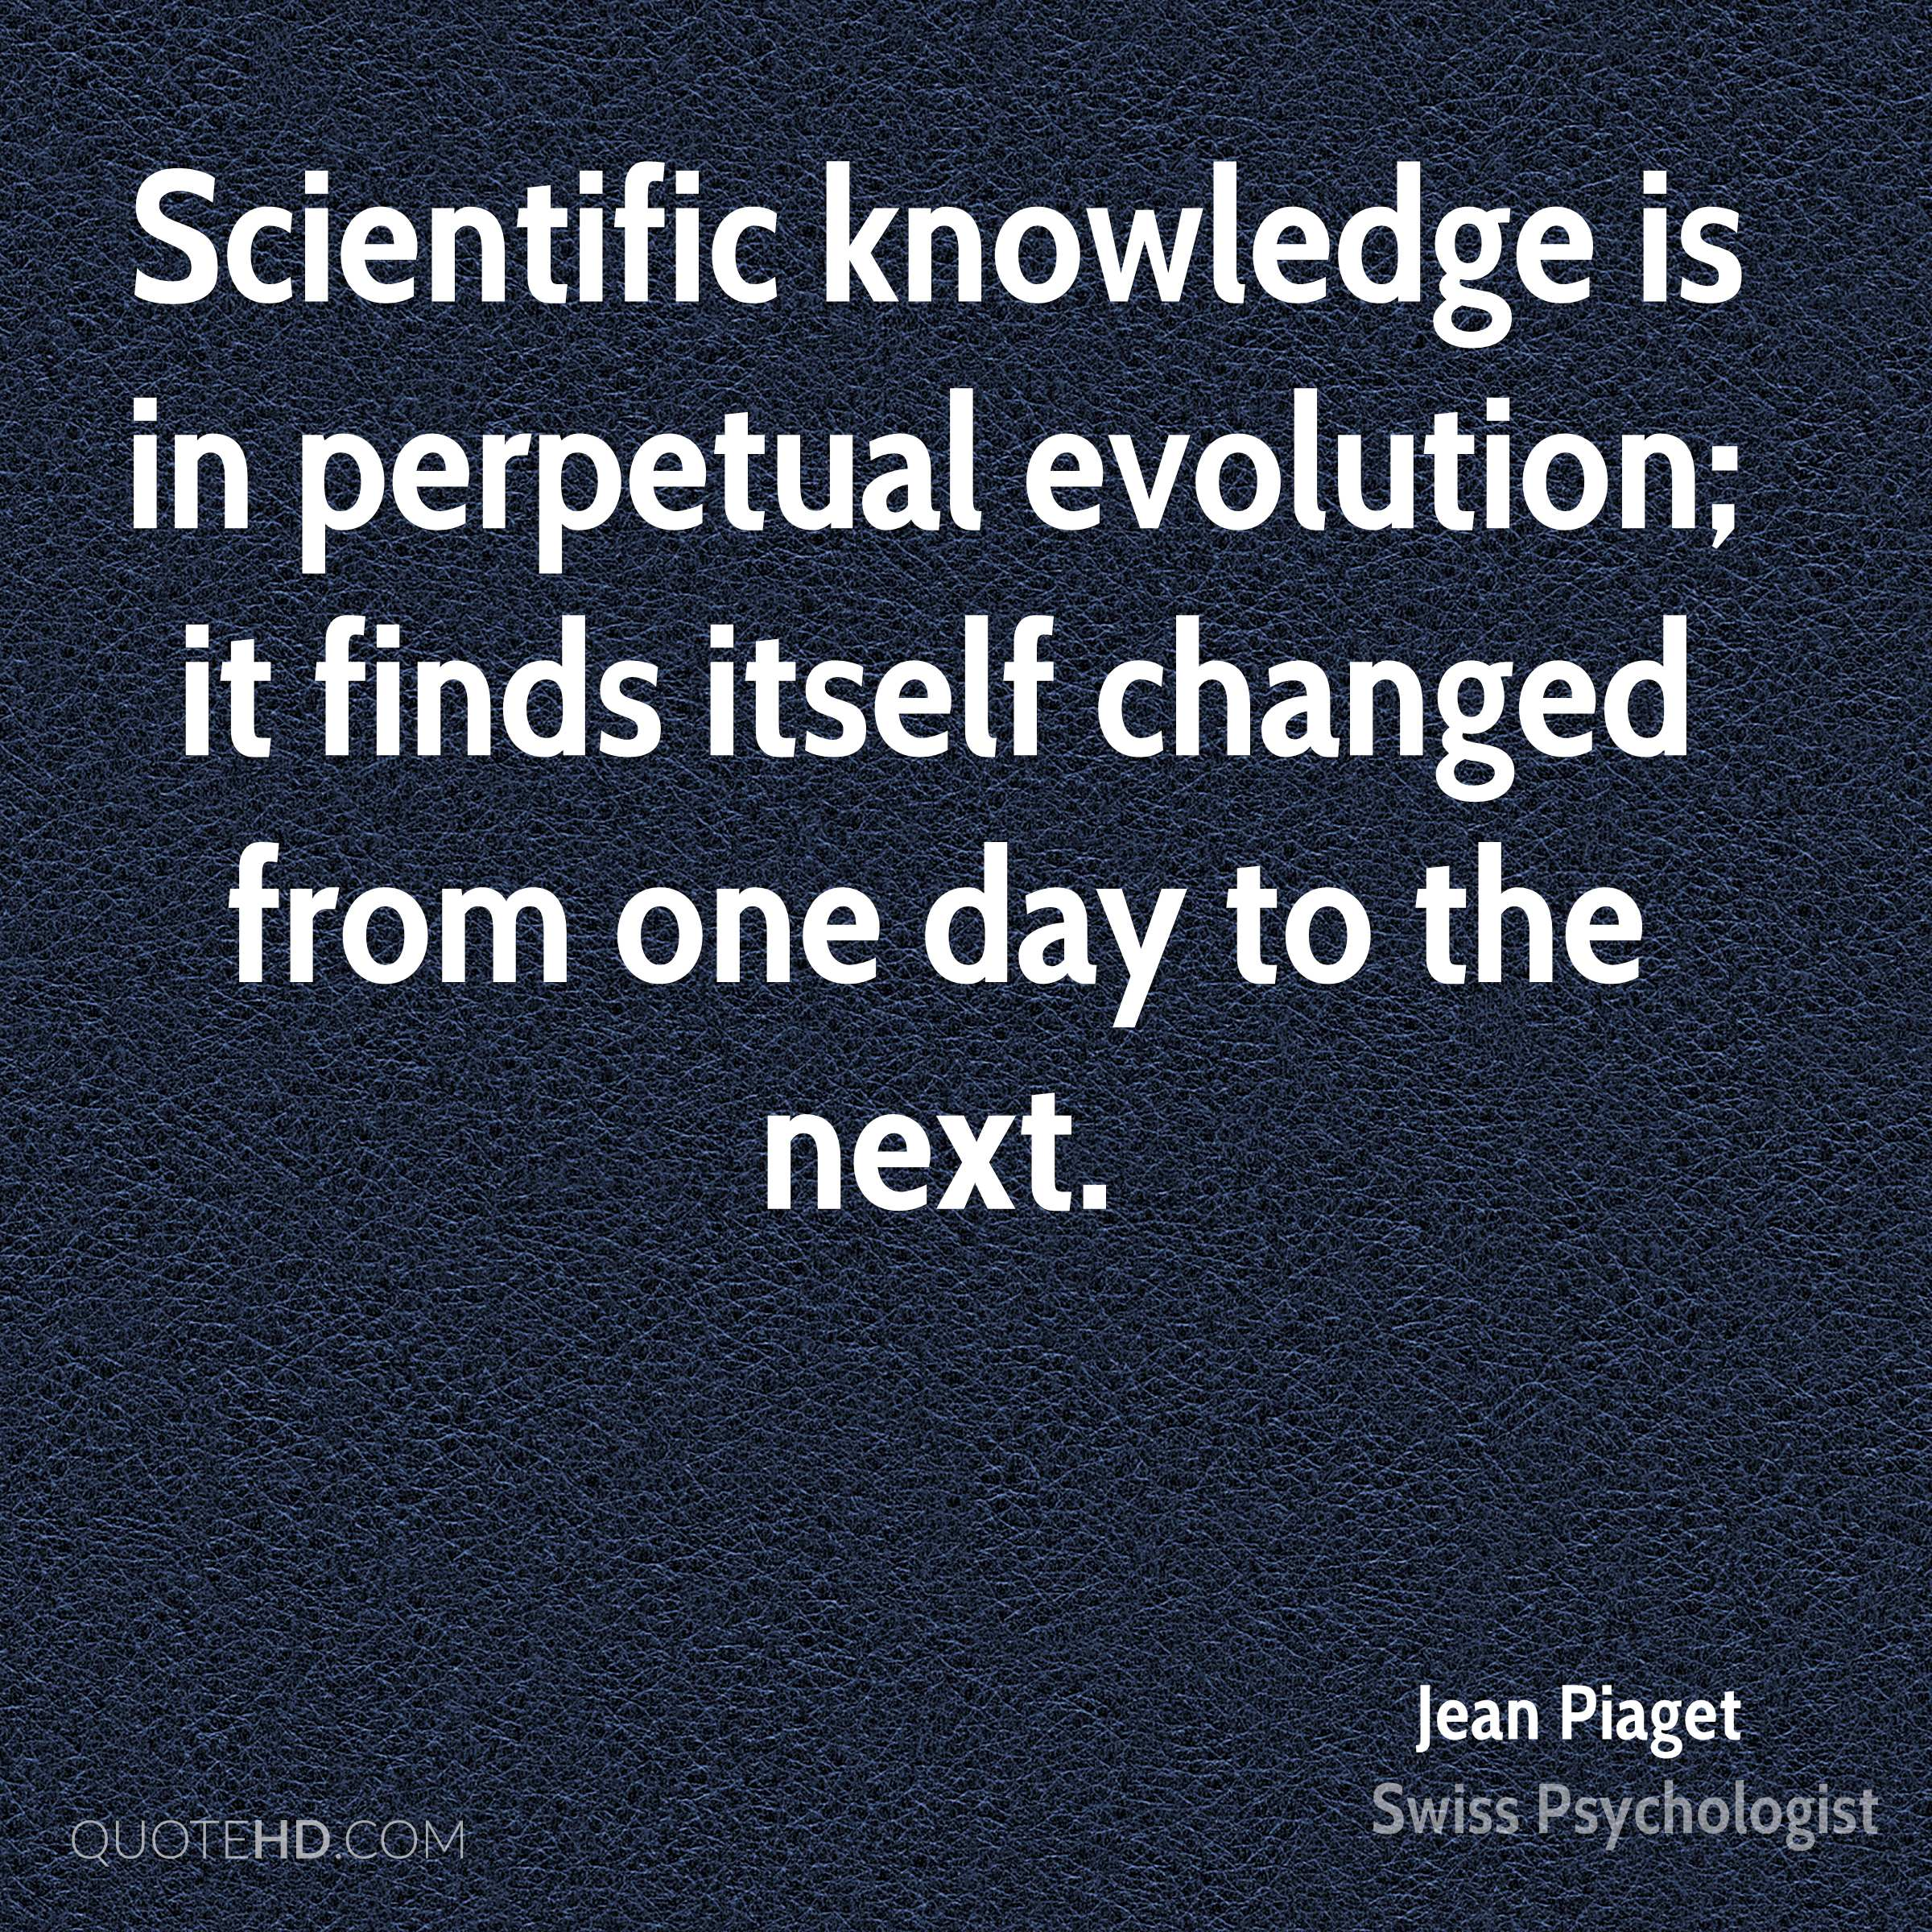 Scientific knowledge is in perpetual evolution; it finds itself changed from one day to the next.